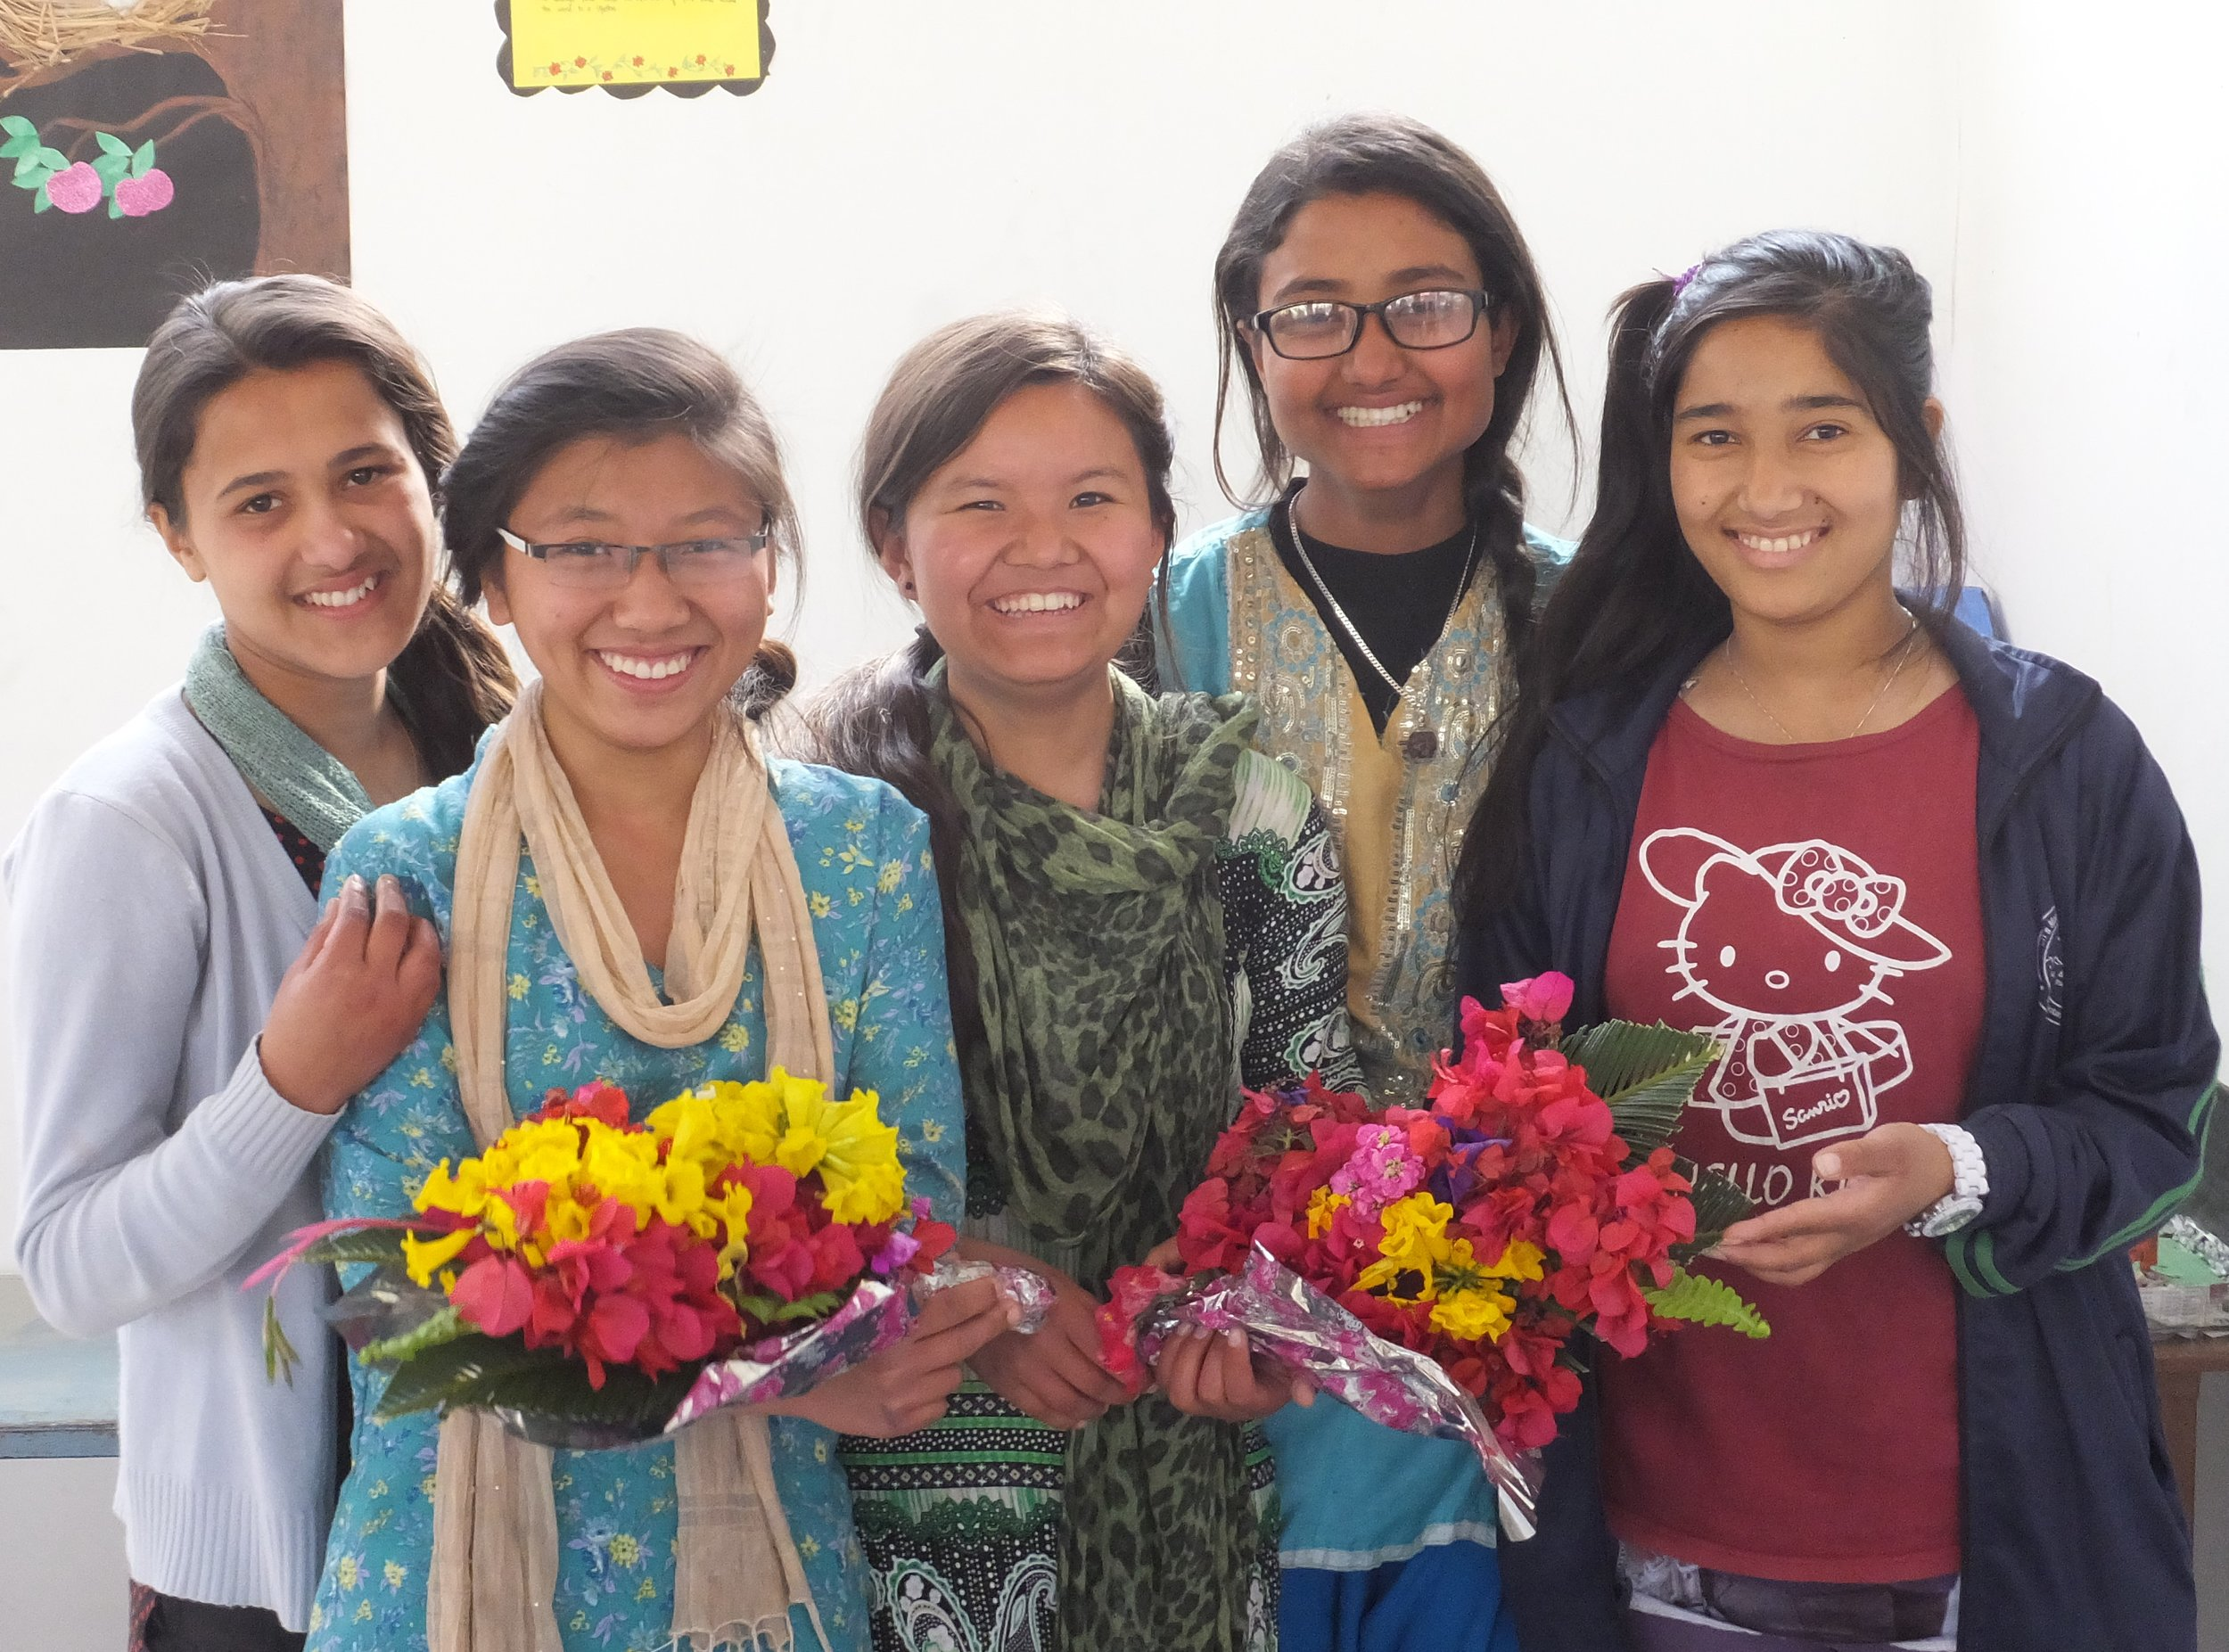 Some of our girls sharing their gift of flowers.